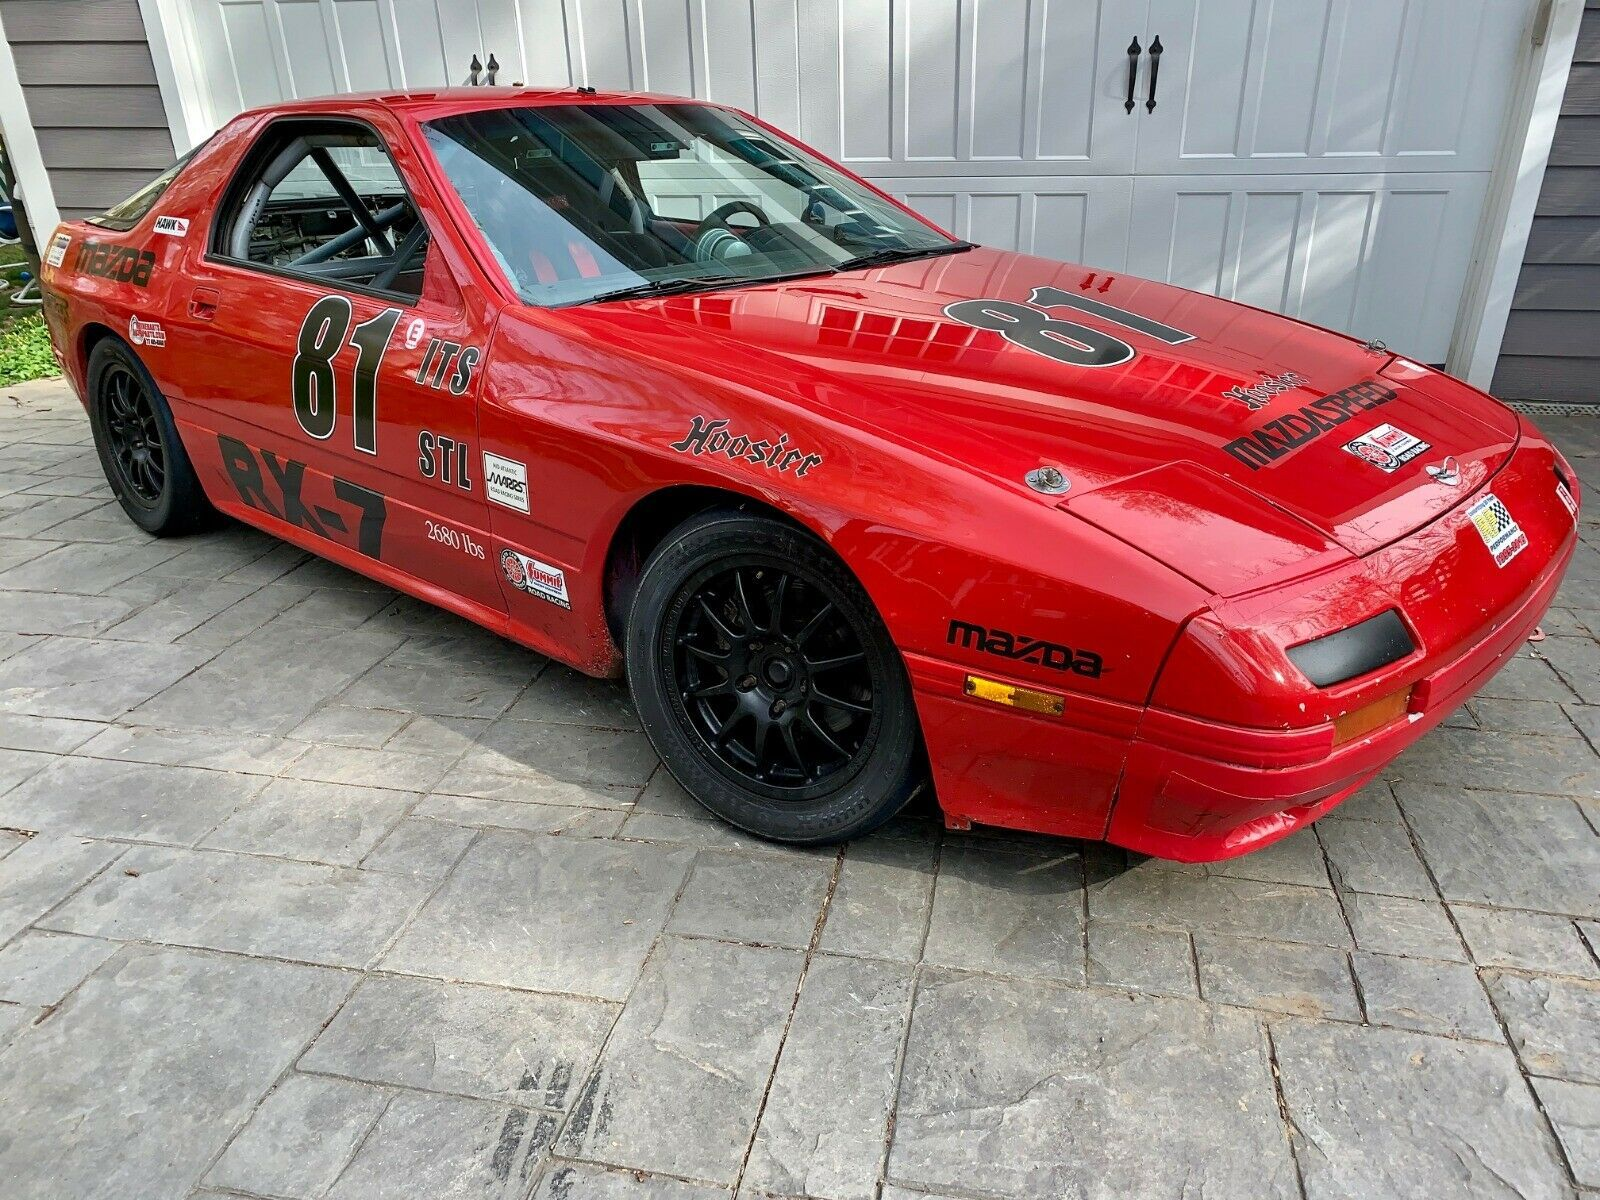 Jumpstart Your Motorsport Career With This Race-Prepared Mazda RX-7